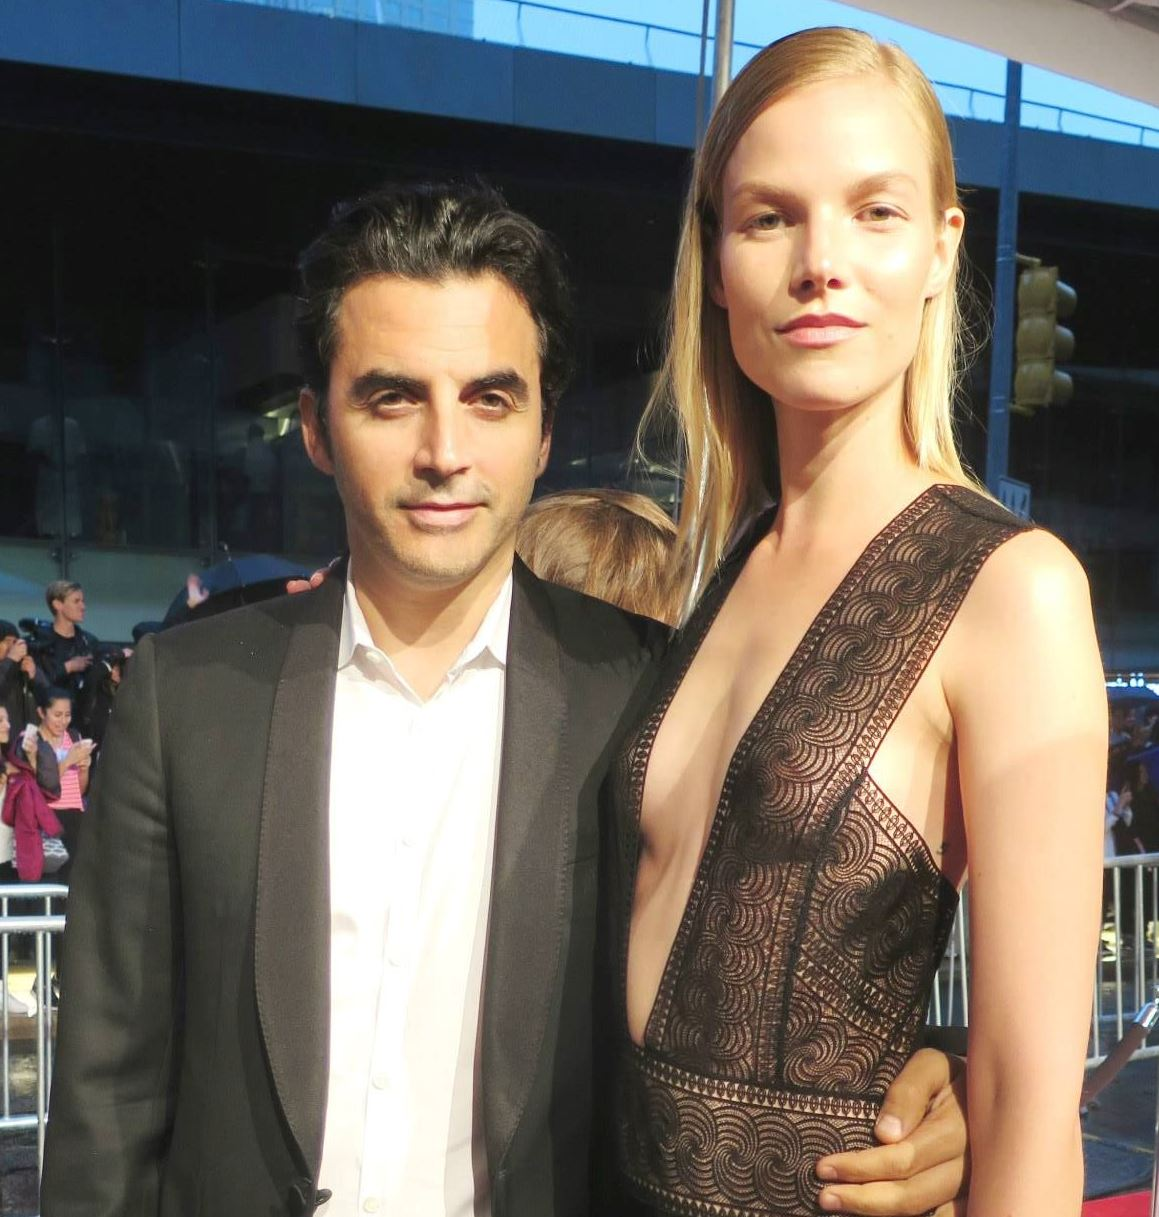 Israeli-American fashion designer Yigal Azrouël and model